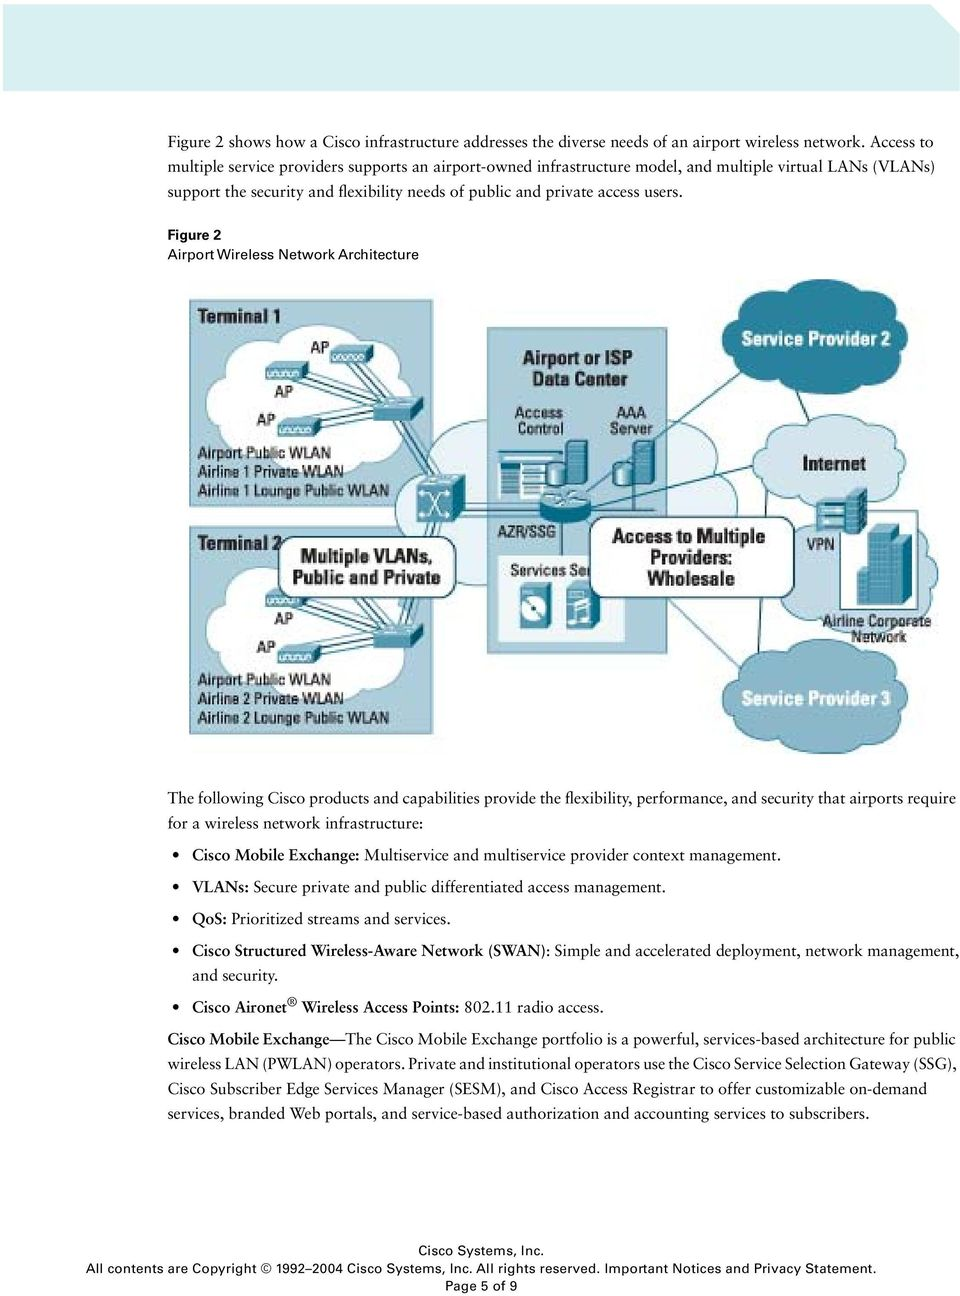 Figure 2 Airport Wireless Network Architecture The following Cisco products and capabilities provide the flexibility, performance, and security that airports require for a wireless network